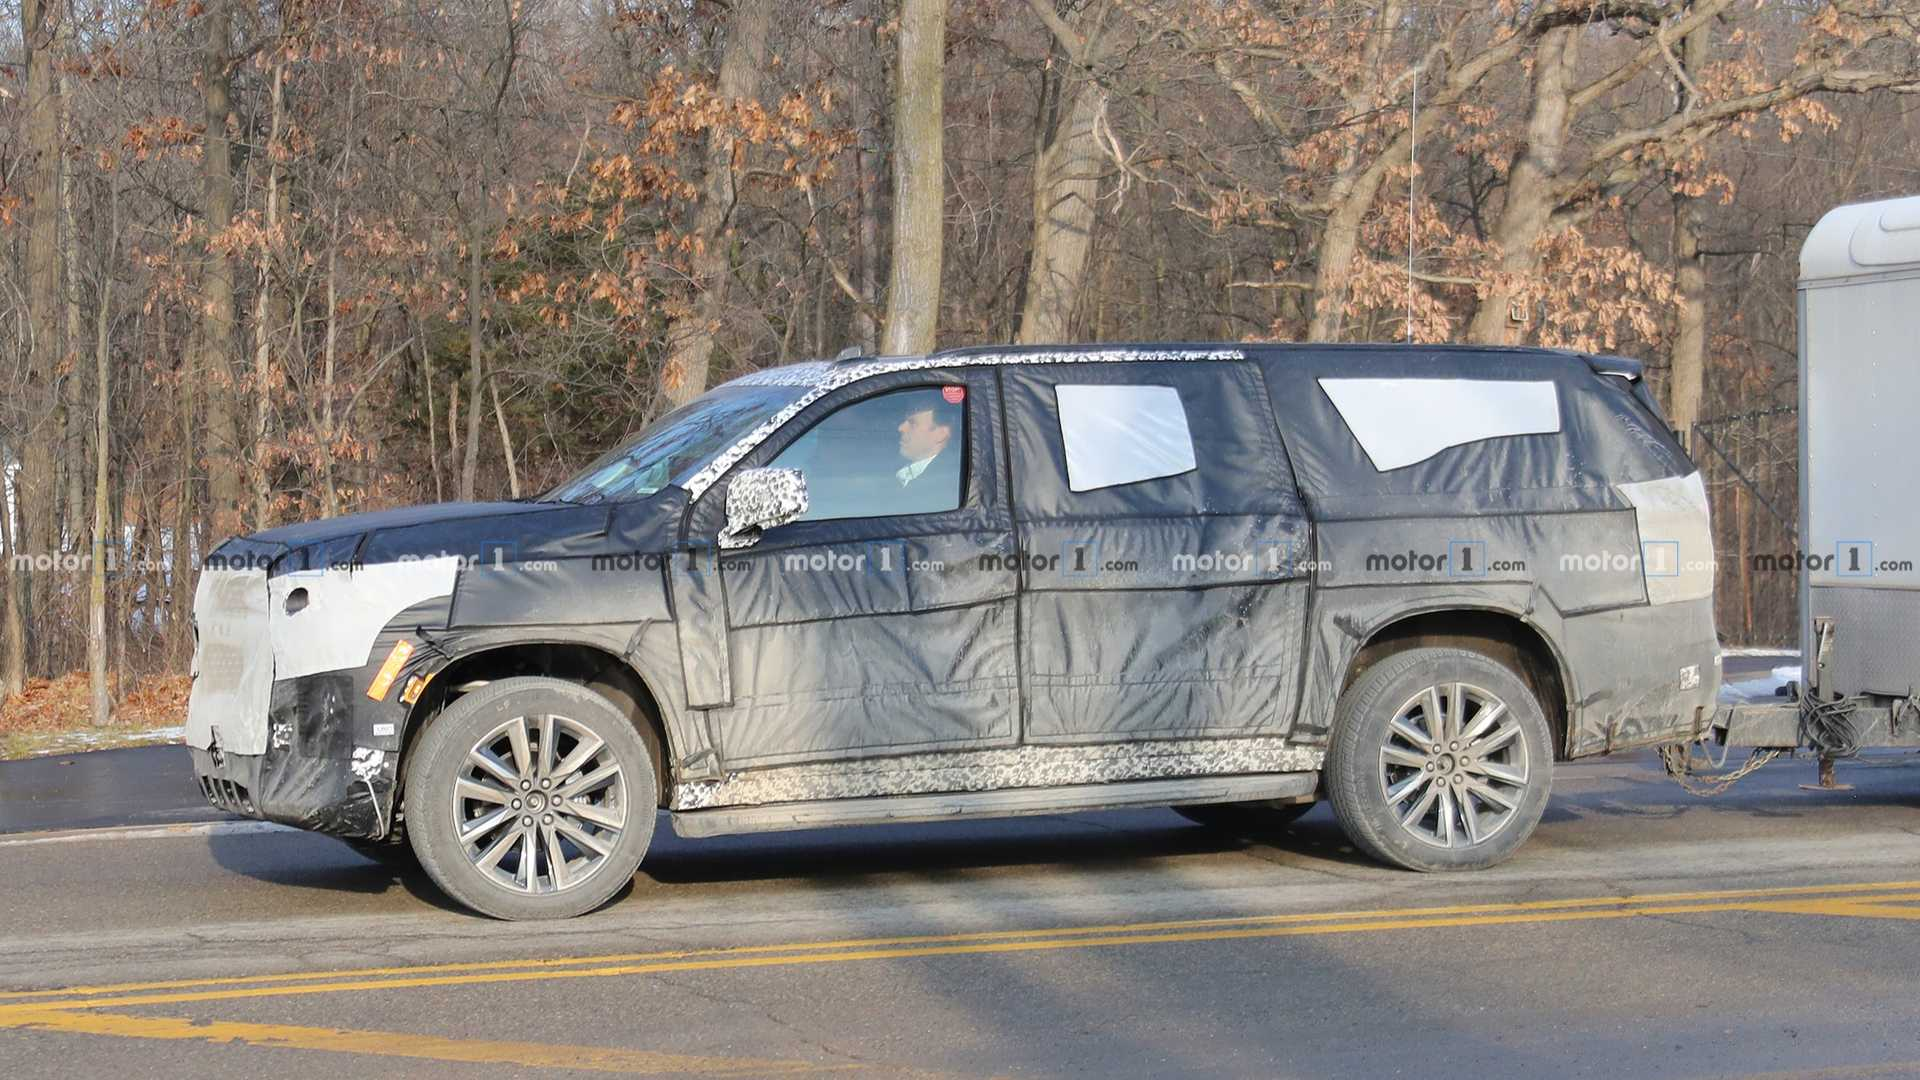 64 Great When Will The 2020 Cadillac Escalade Be Released Overview for When Will The 2020 Cadillac Escalade Be Released